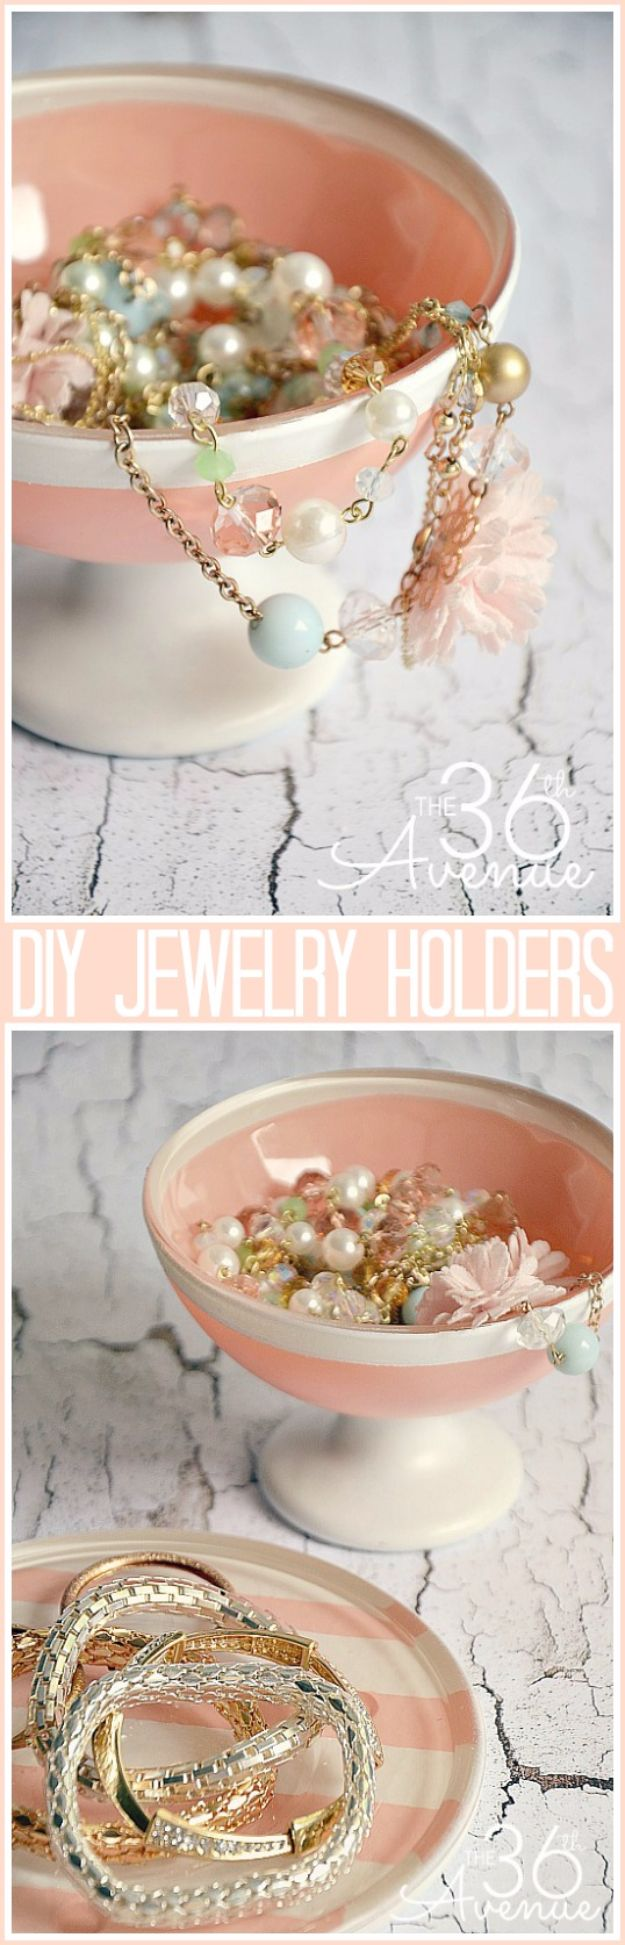 Last Minute Christmas Gifts - DIY Jewelry Holder - Quick DIY Gift Ideas and Easy Christmas Presents To Make for Mom, Dad, Family and Friends - Dollar Store Crafts and Cheap Homemade Gifts, Mason Jar Ideas for Gifts in A Jar, Cute and Creative Things To Make In A Hurry http://diyjoy.com/last-minute-gift-ideas-christmas